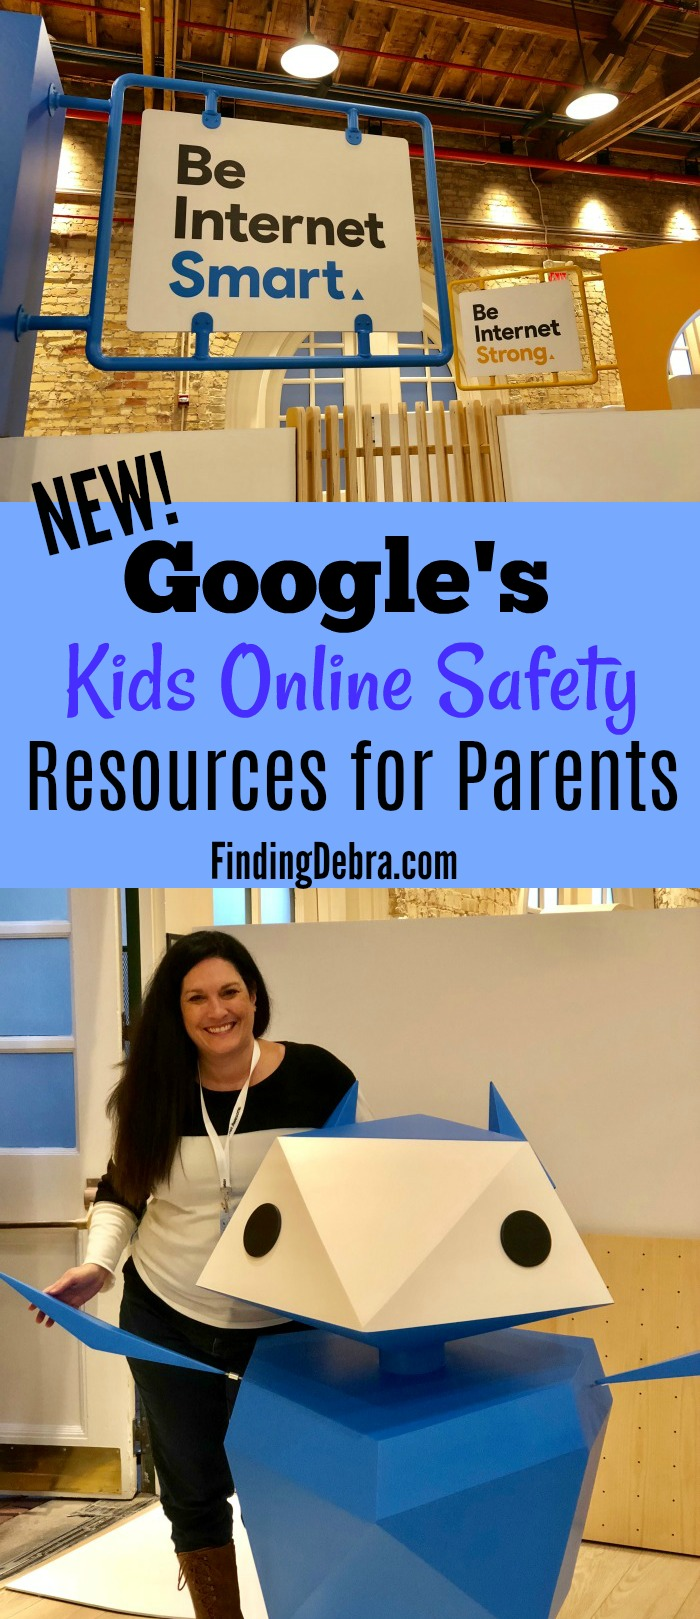 Google's Kids Online Safety Resources for Parents